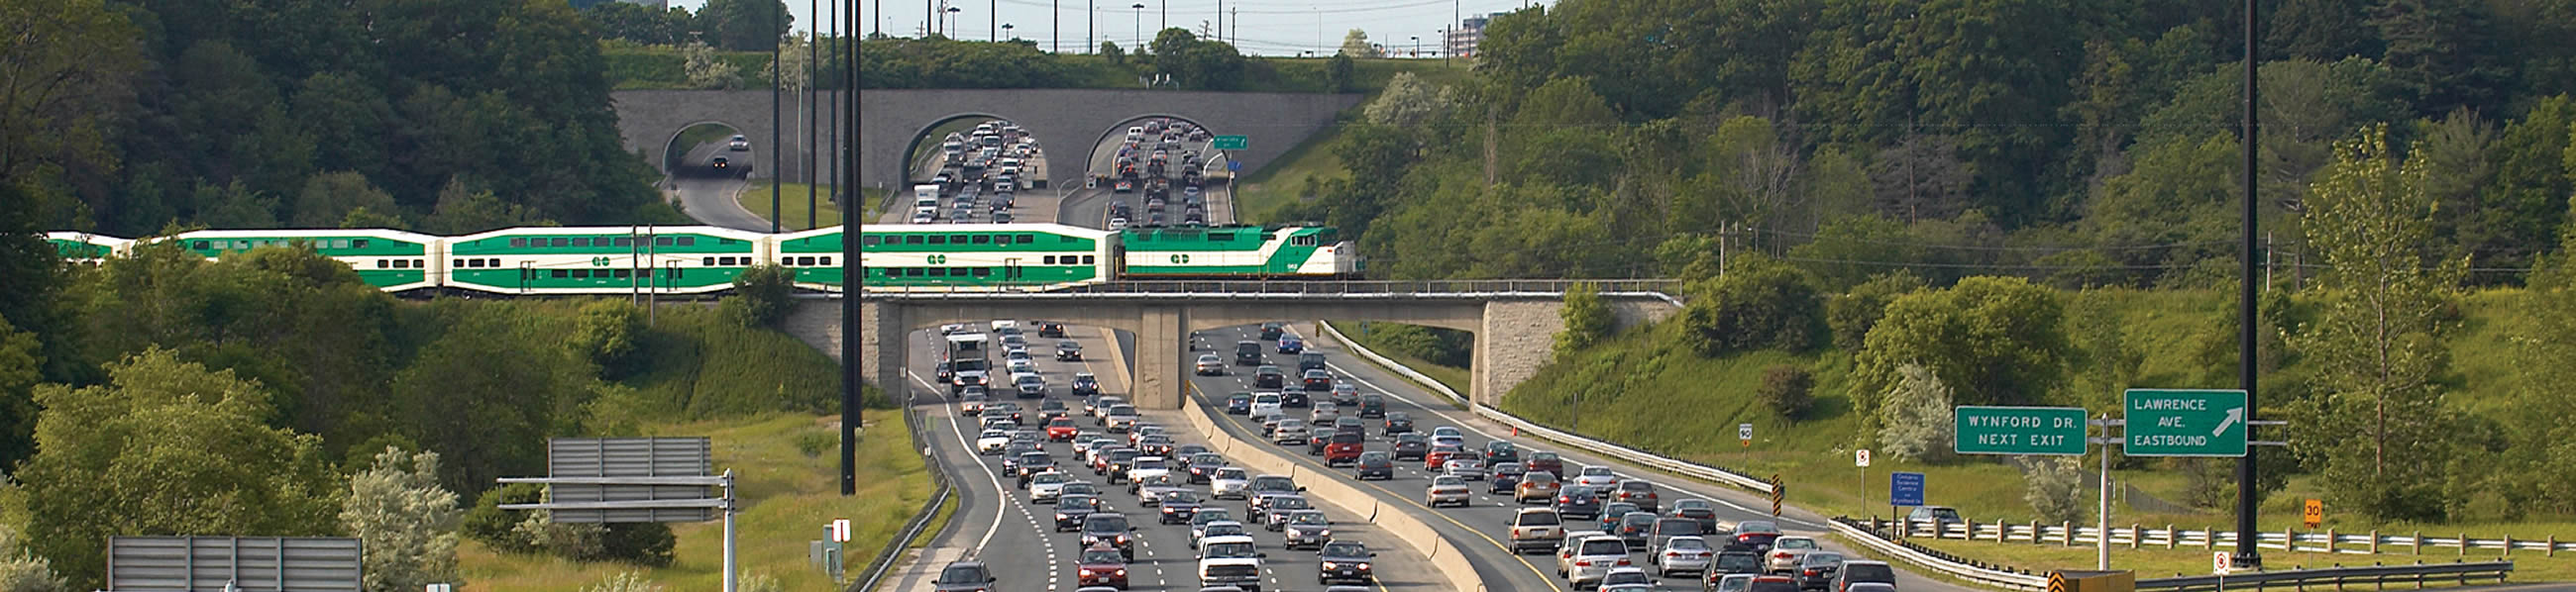 Morning traffic and the Go Train